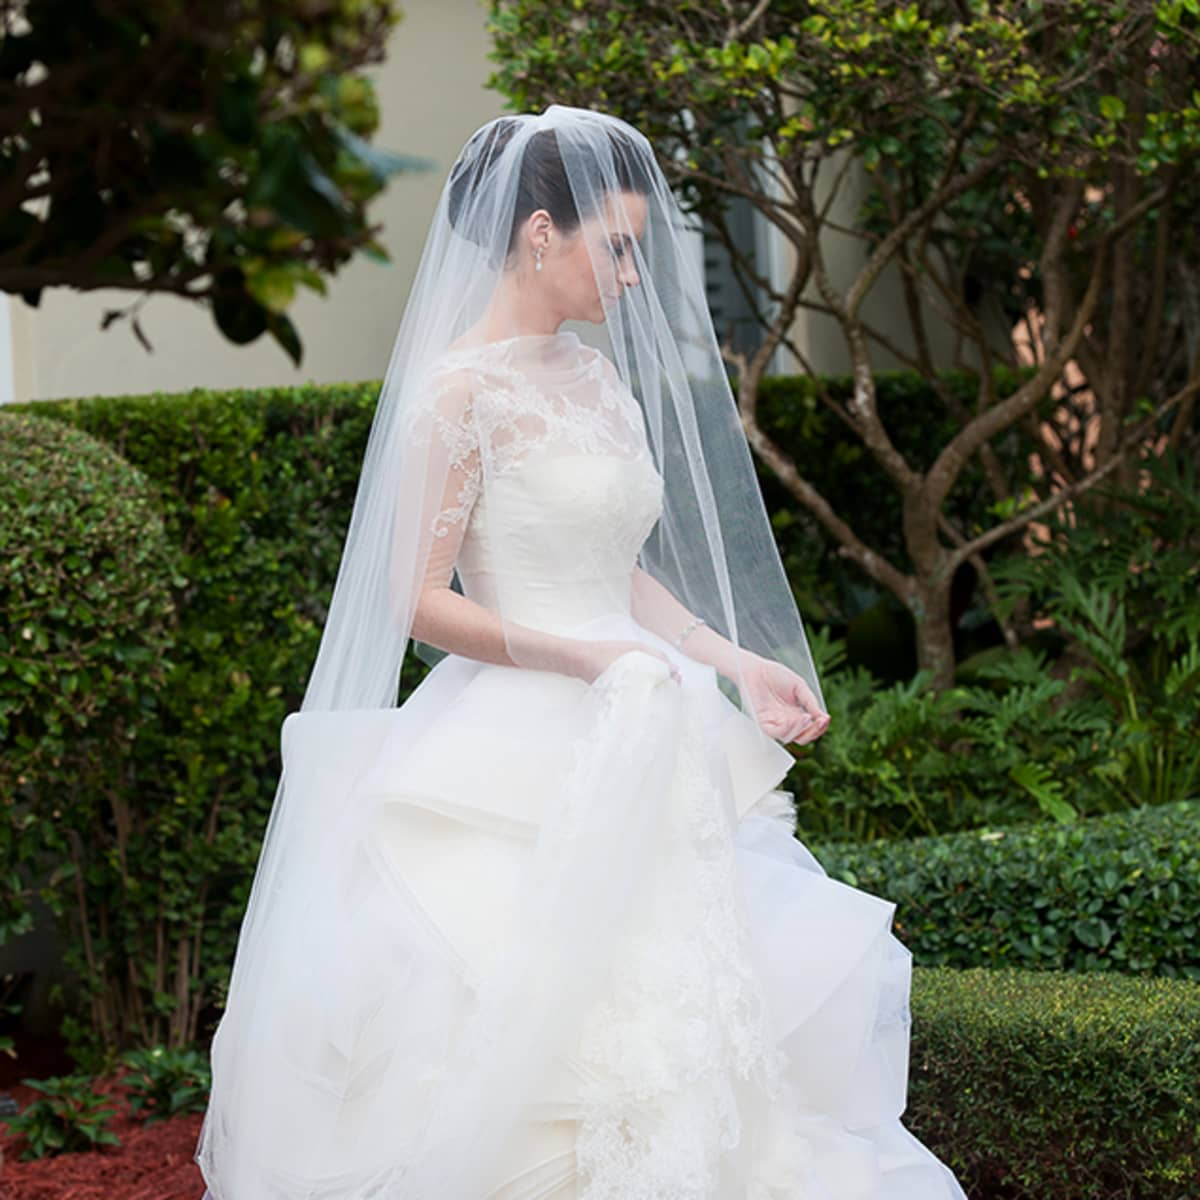 Megan Dons A Chantilly Lace Bolero Wrap And Long Veil For The Ceremony